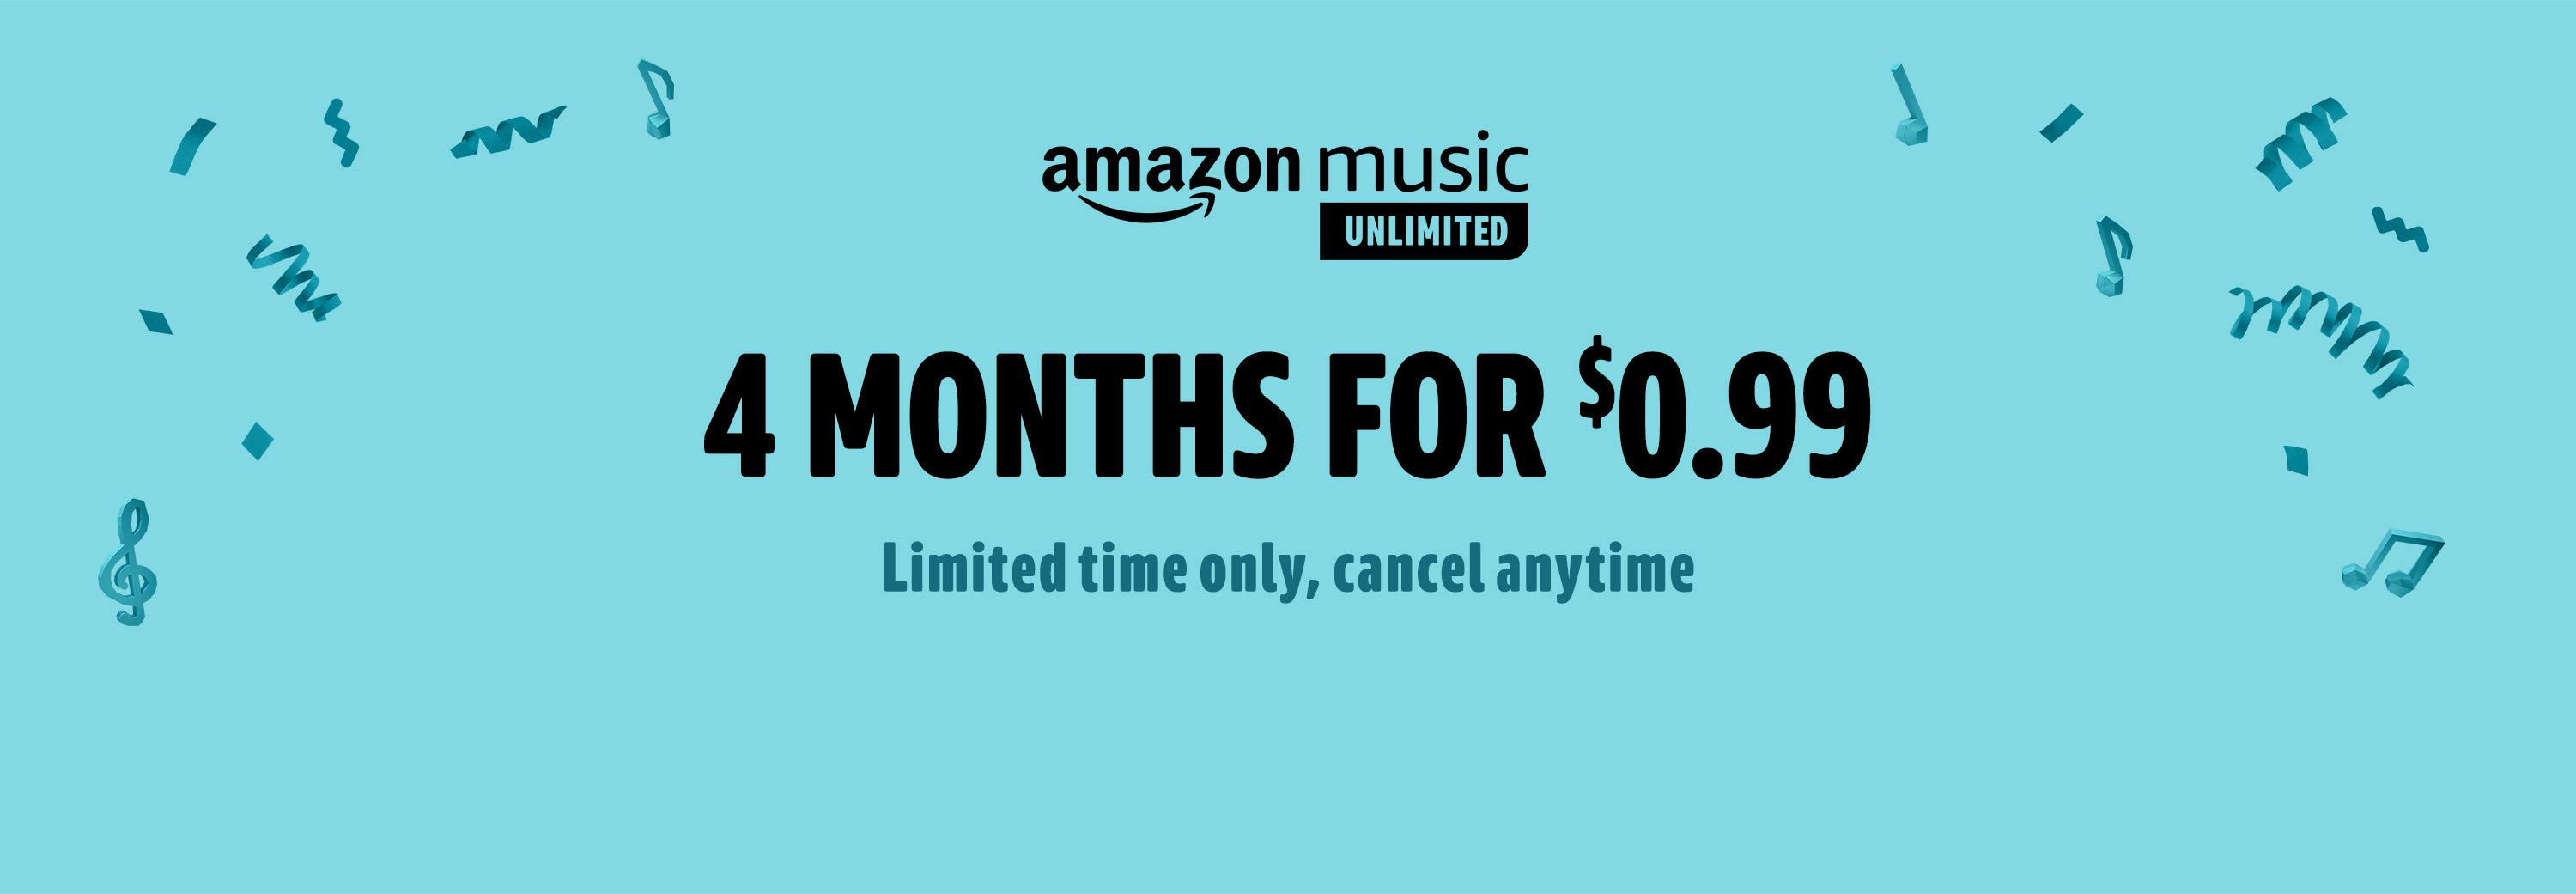 4 months of Amazon Music Unlimited for $0.99